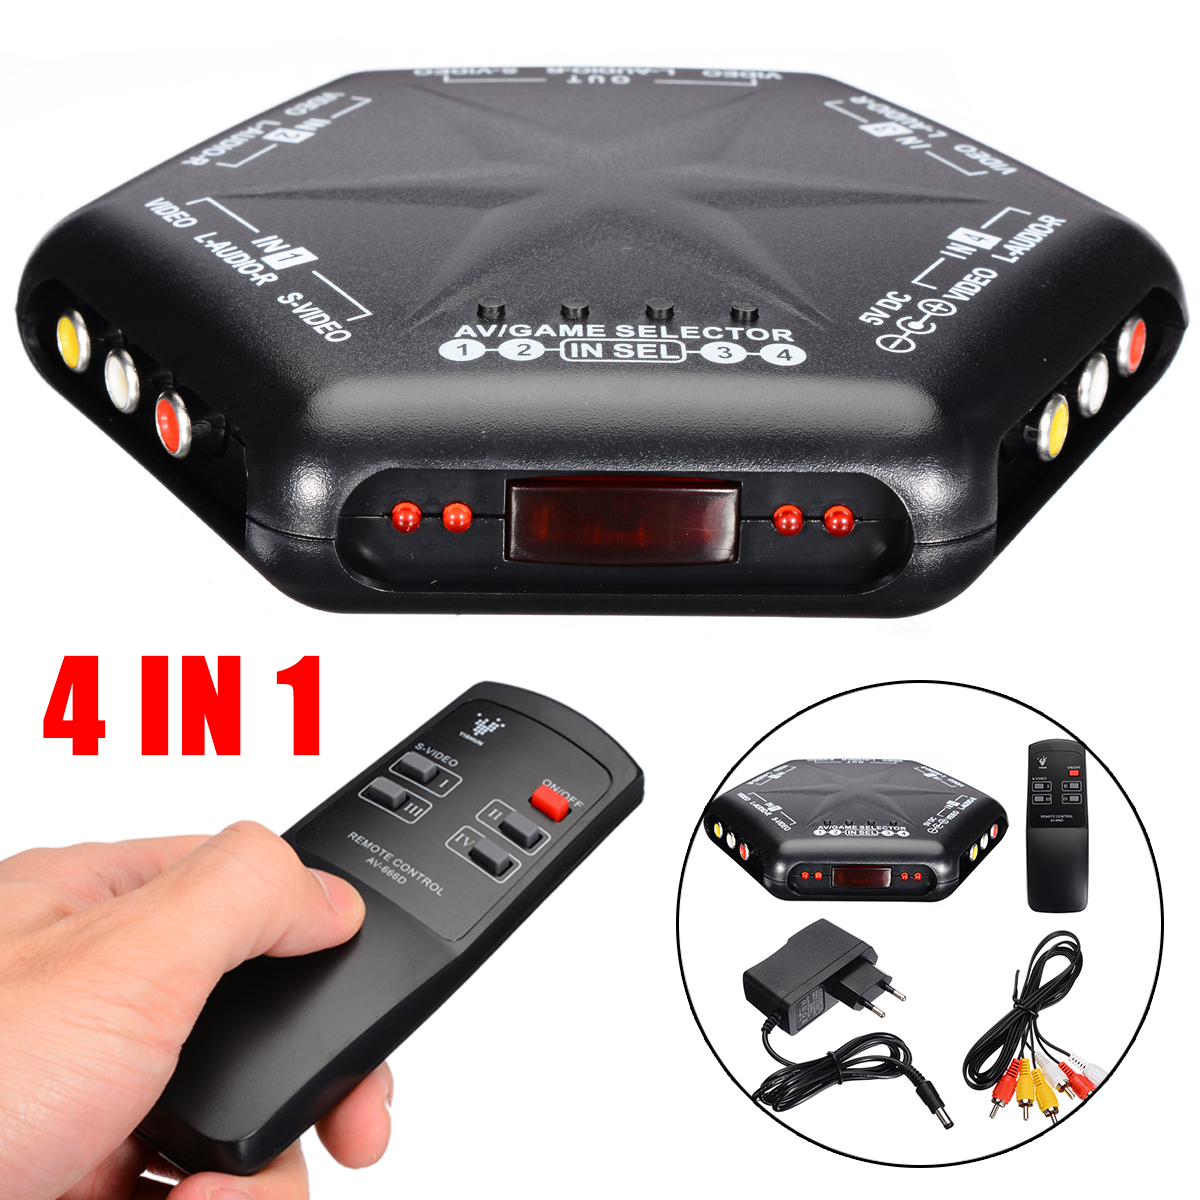 4 in 1 out Audio Video AV Game <font><b>RCA</b></font> <font><b>Switch</b></font> Selector Box Splitter with A/V <font><b>Switch</b></font> +<font><b>RCA</b></font> Cable+<font><b>Remote</b></font> Control+Adapter for DVD VCR image